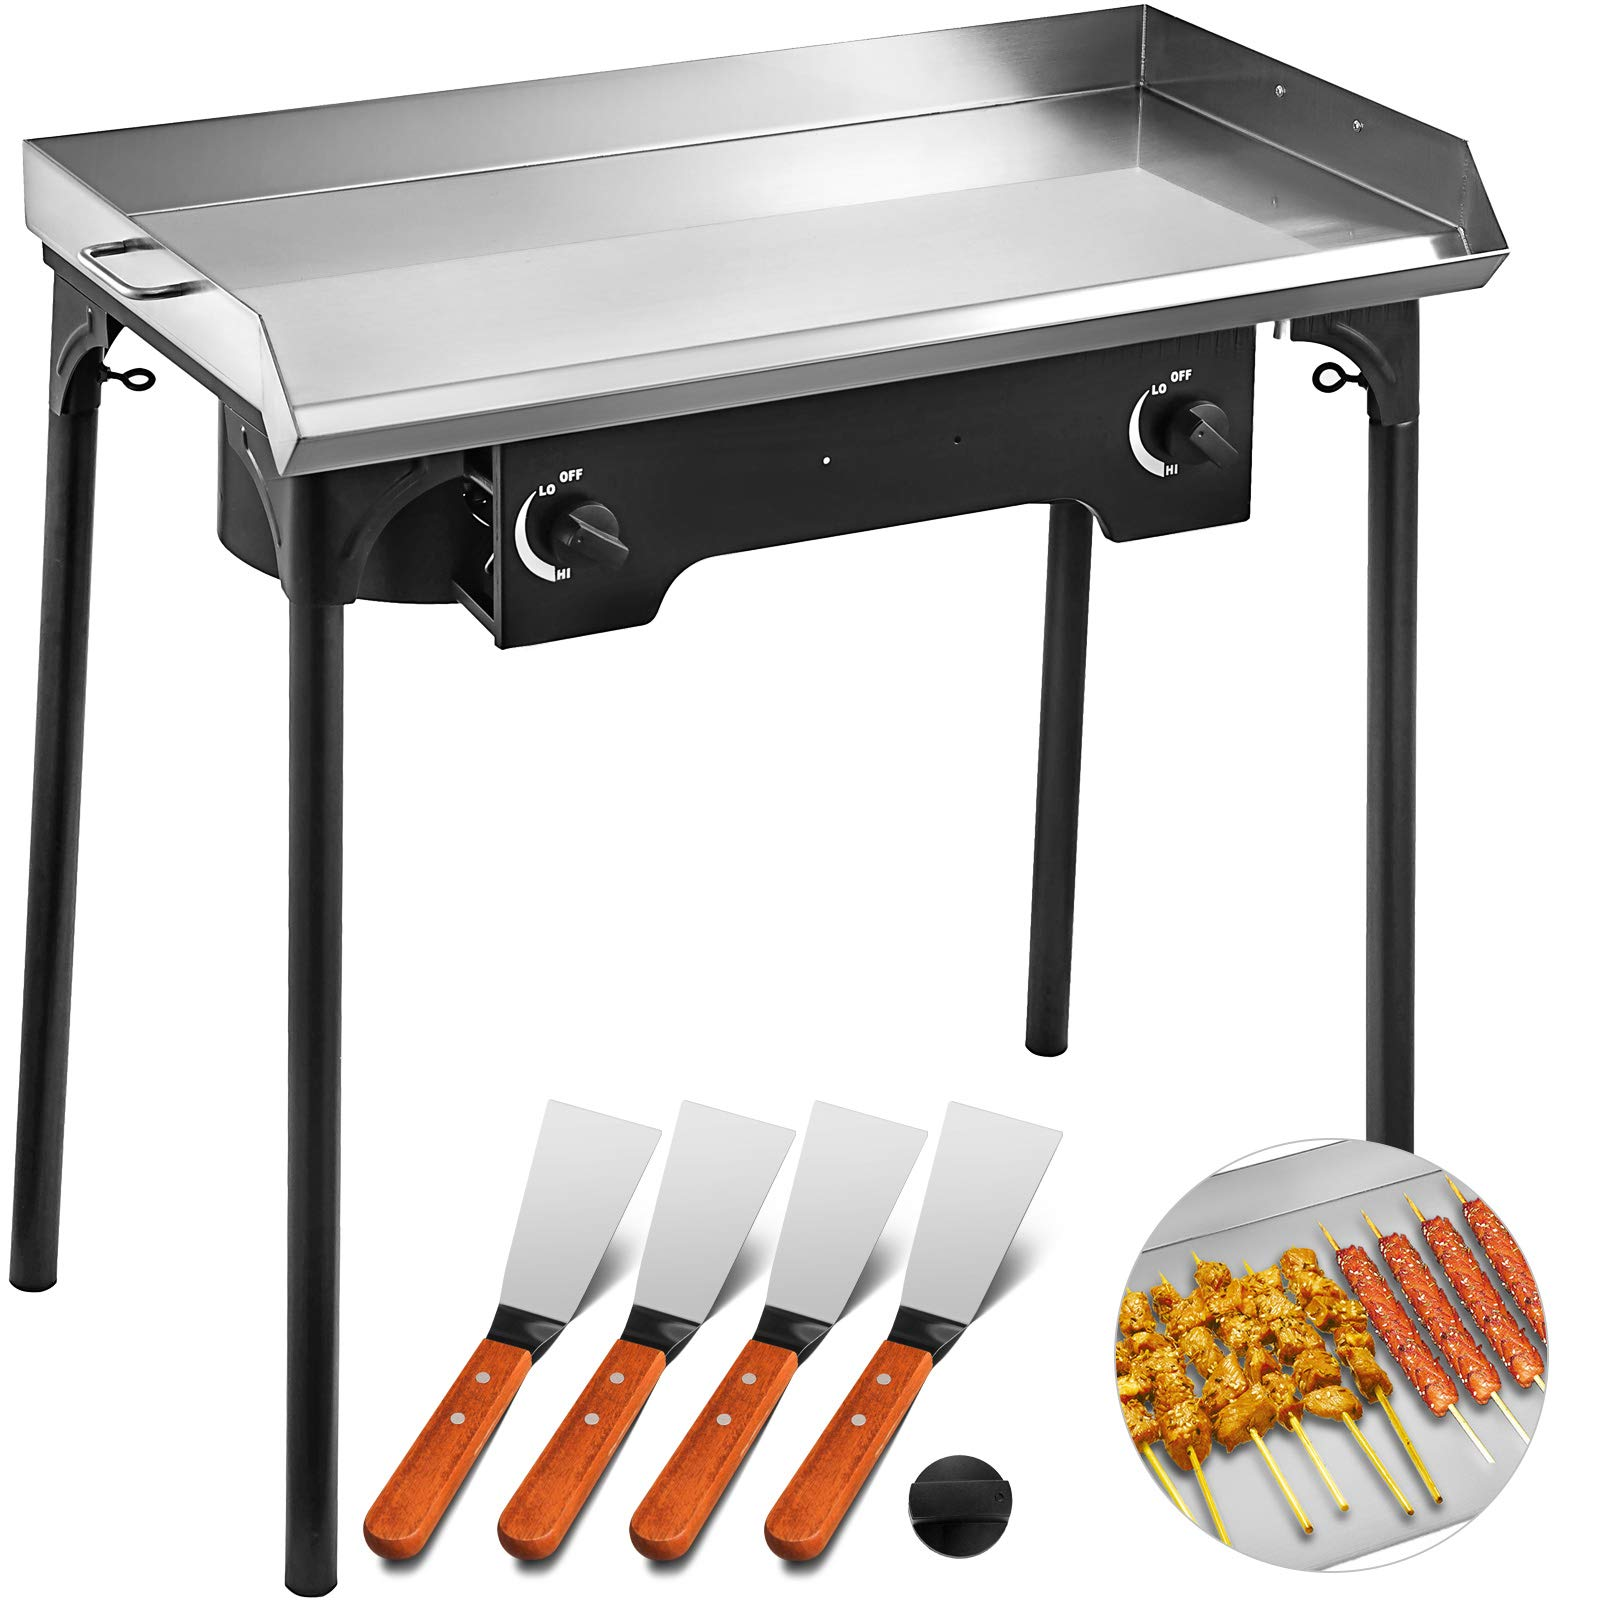 VEVOR Flat Top Griddle Grill & Propane Fueled 2 Adjustable Burners Stove 32'' x 17'' Double Burner Stove Griddle Flat Top Stainless Steel with 4 Griddle Spatula & Scraper